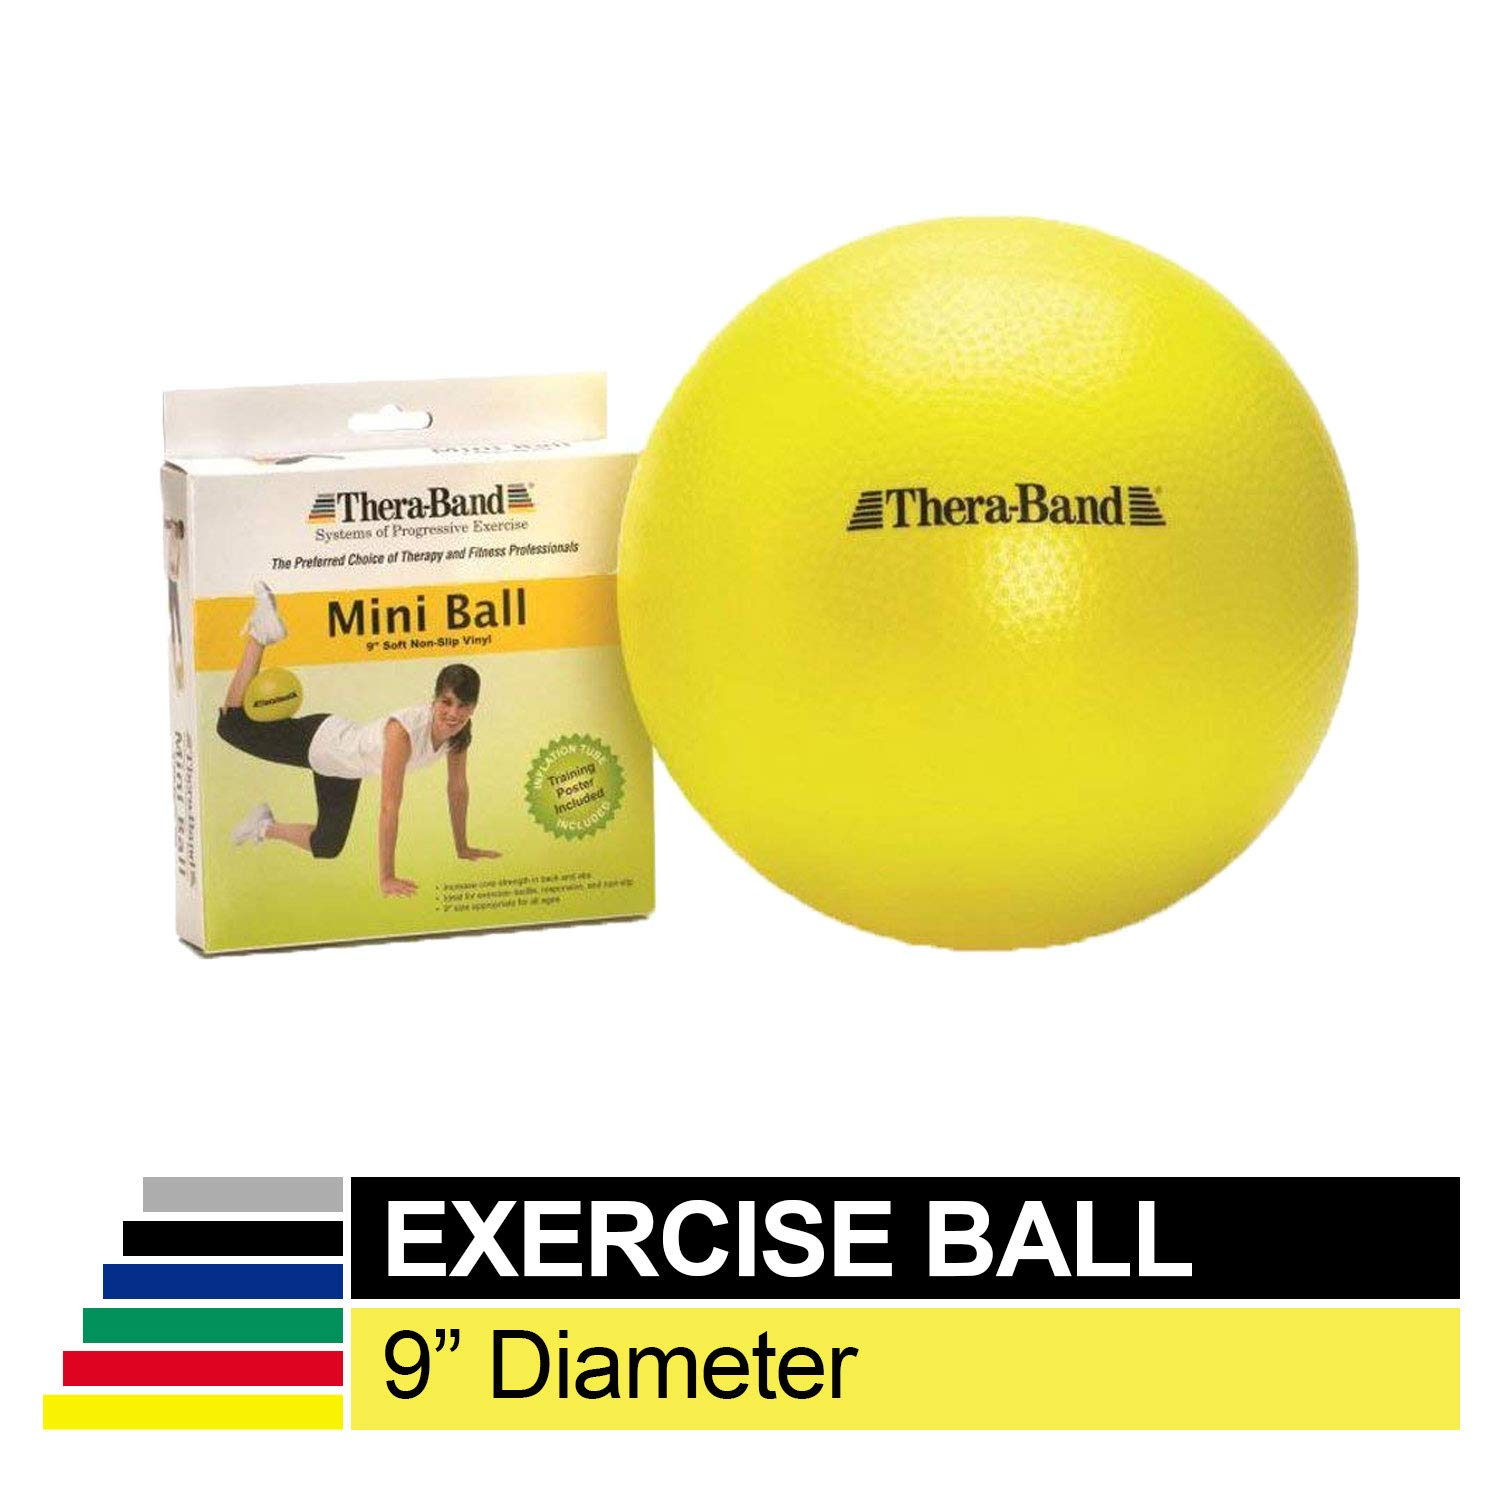 TheraBand Mini Ball, Small Exercise Ball for Yoga, Pilates, Abdominal Workouts, Shoulder Therapy, Core Strengthening, At-Home Gym & Physical Therapy Tool by TheraBand